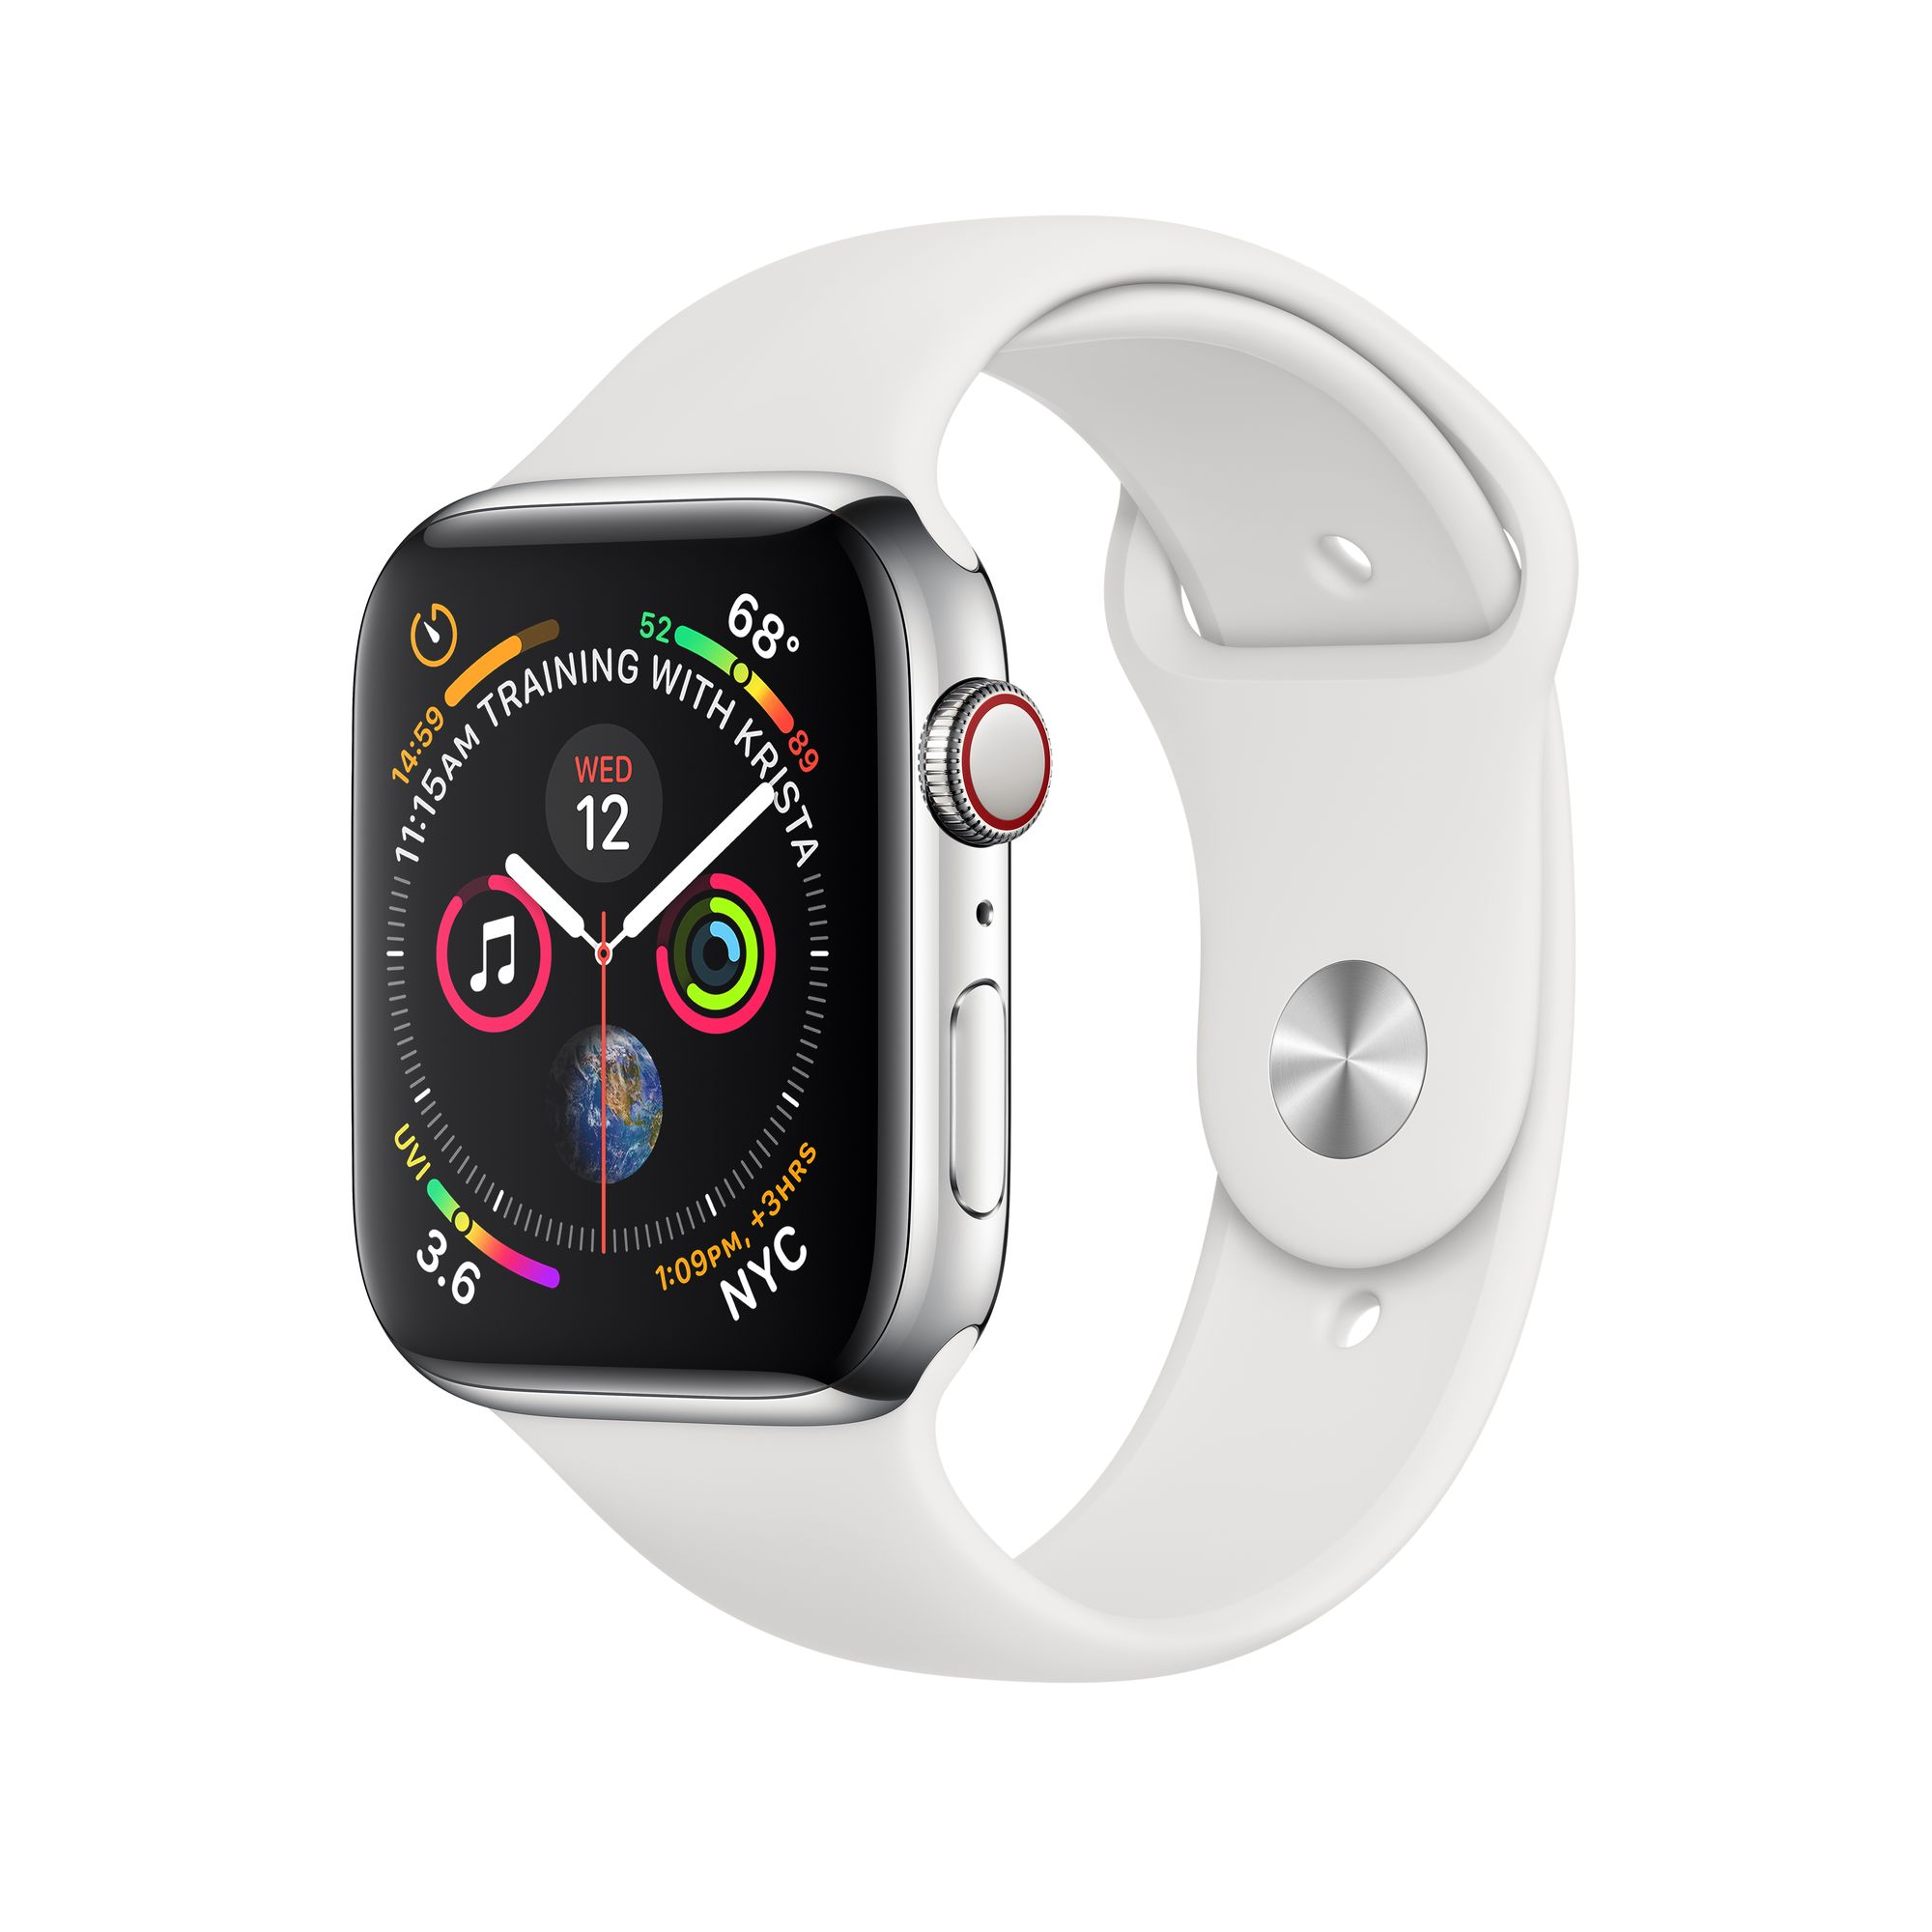 reputable site c7e61 e90e2 Apple Watch Series 4 GPS + Cellular, 40mm Stainless Steel Case with White  Sport Band